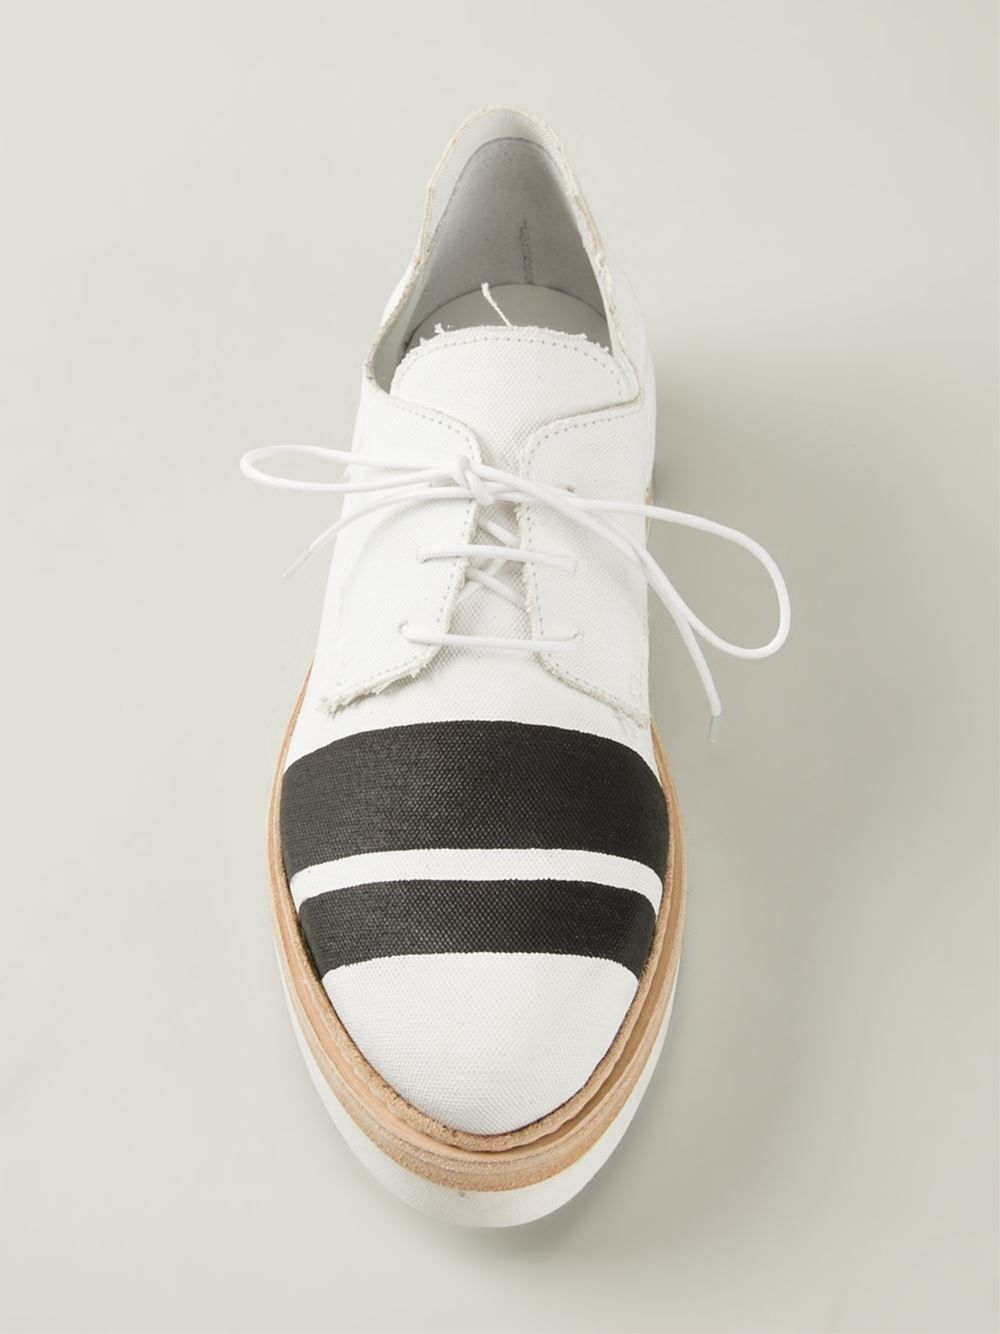 Cinzia Araia Stripe Lace Up Shoes - Nike - Via Verdi - Farfetch.com